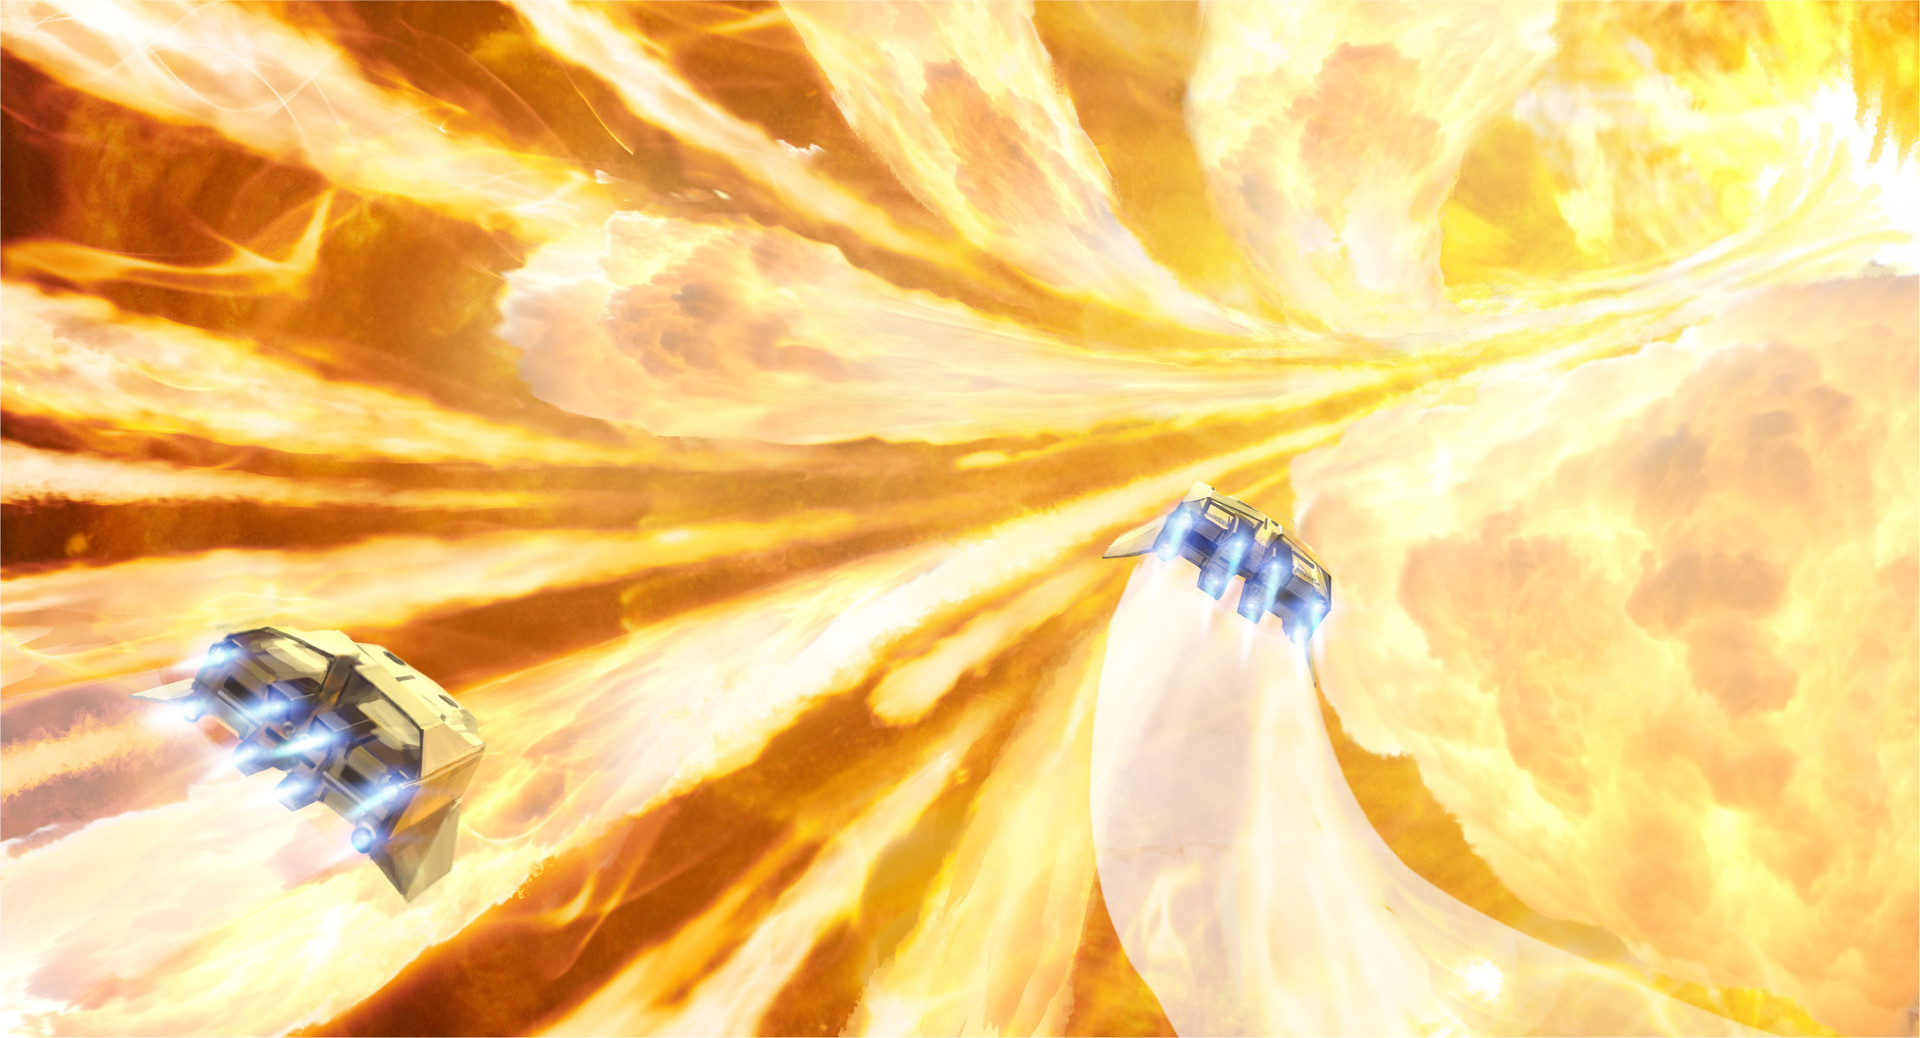 We fly up the bridge against the stream toward the angry giant beyond, dodging the bombardment of molten plasma.